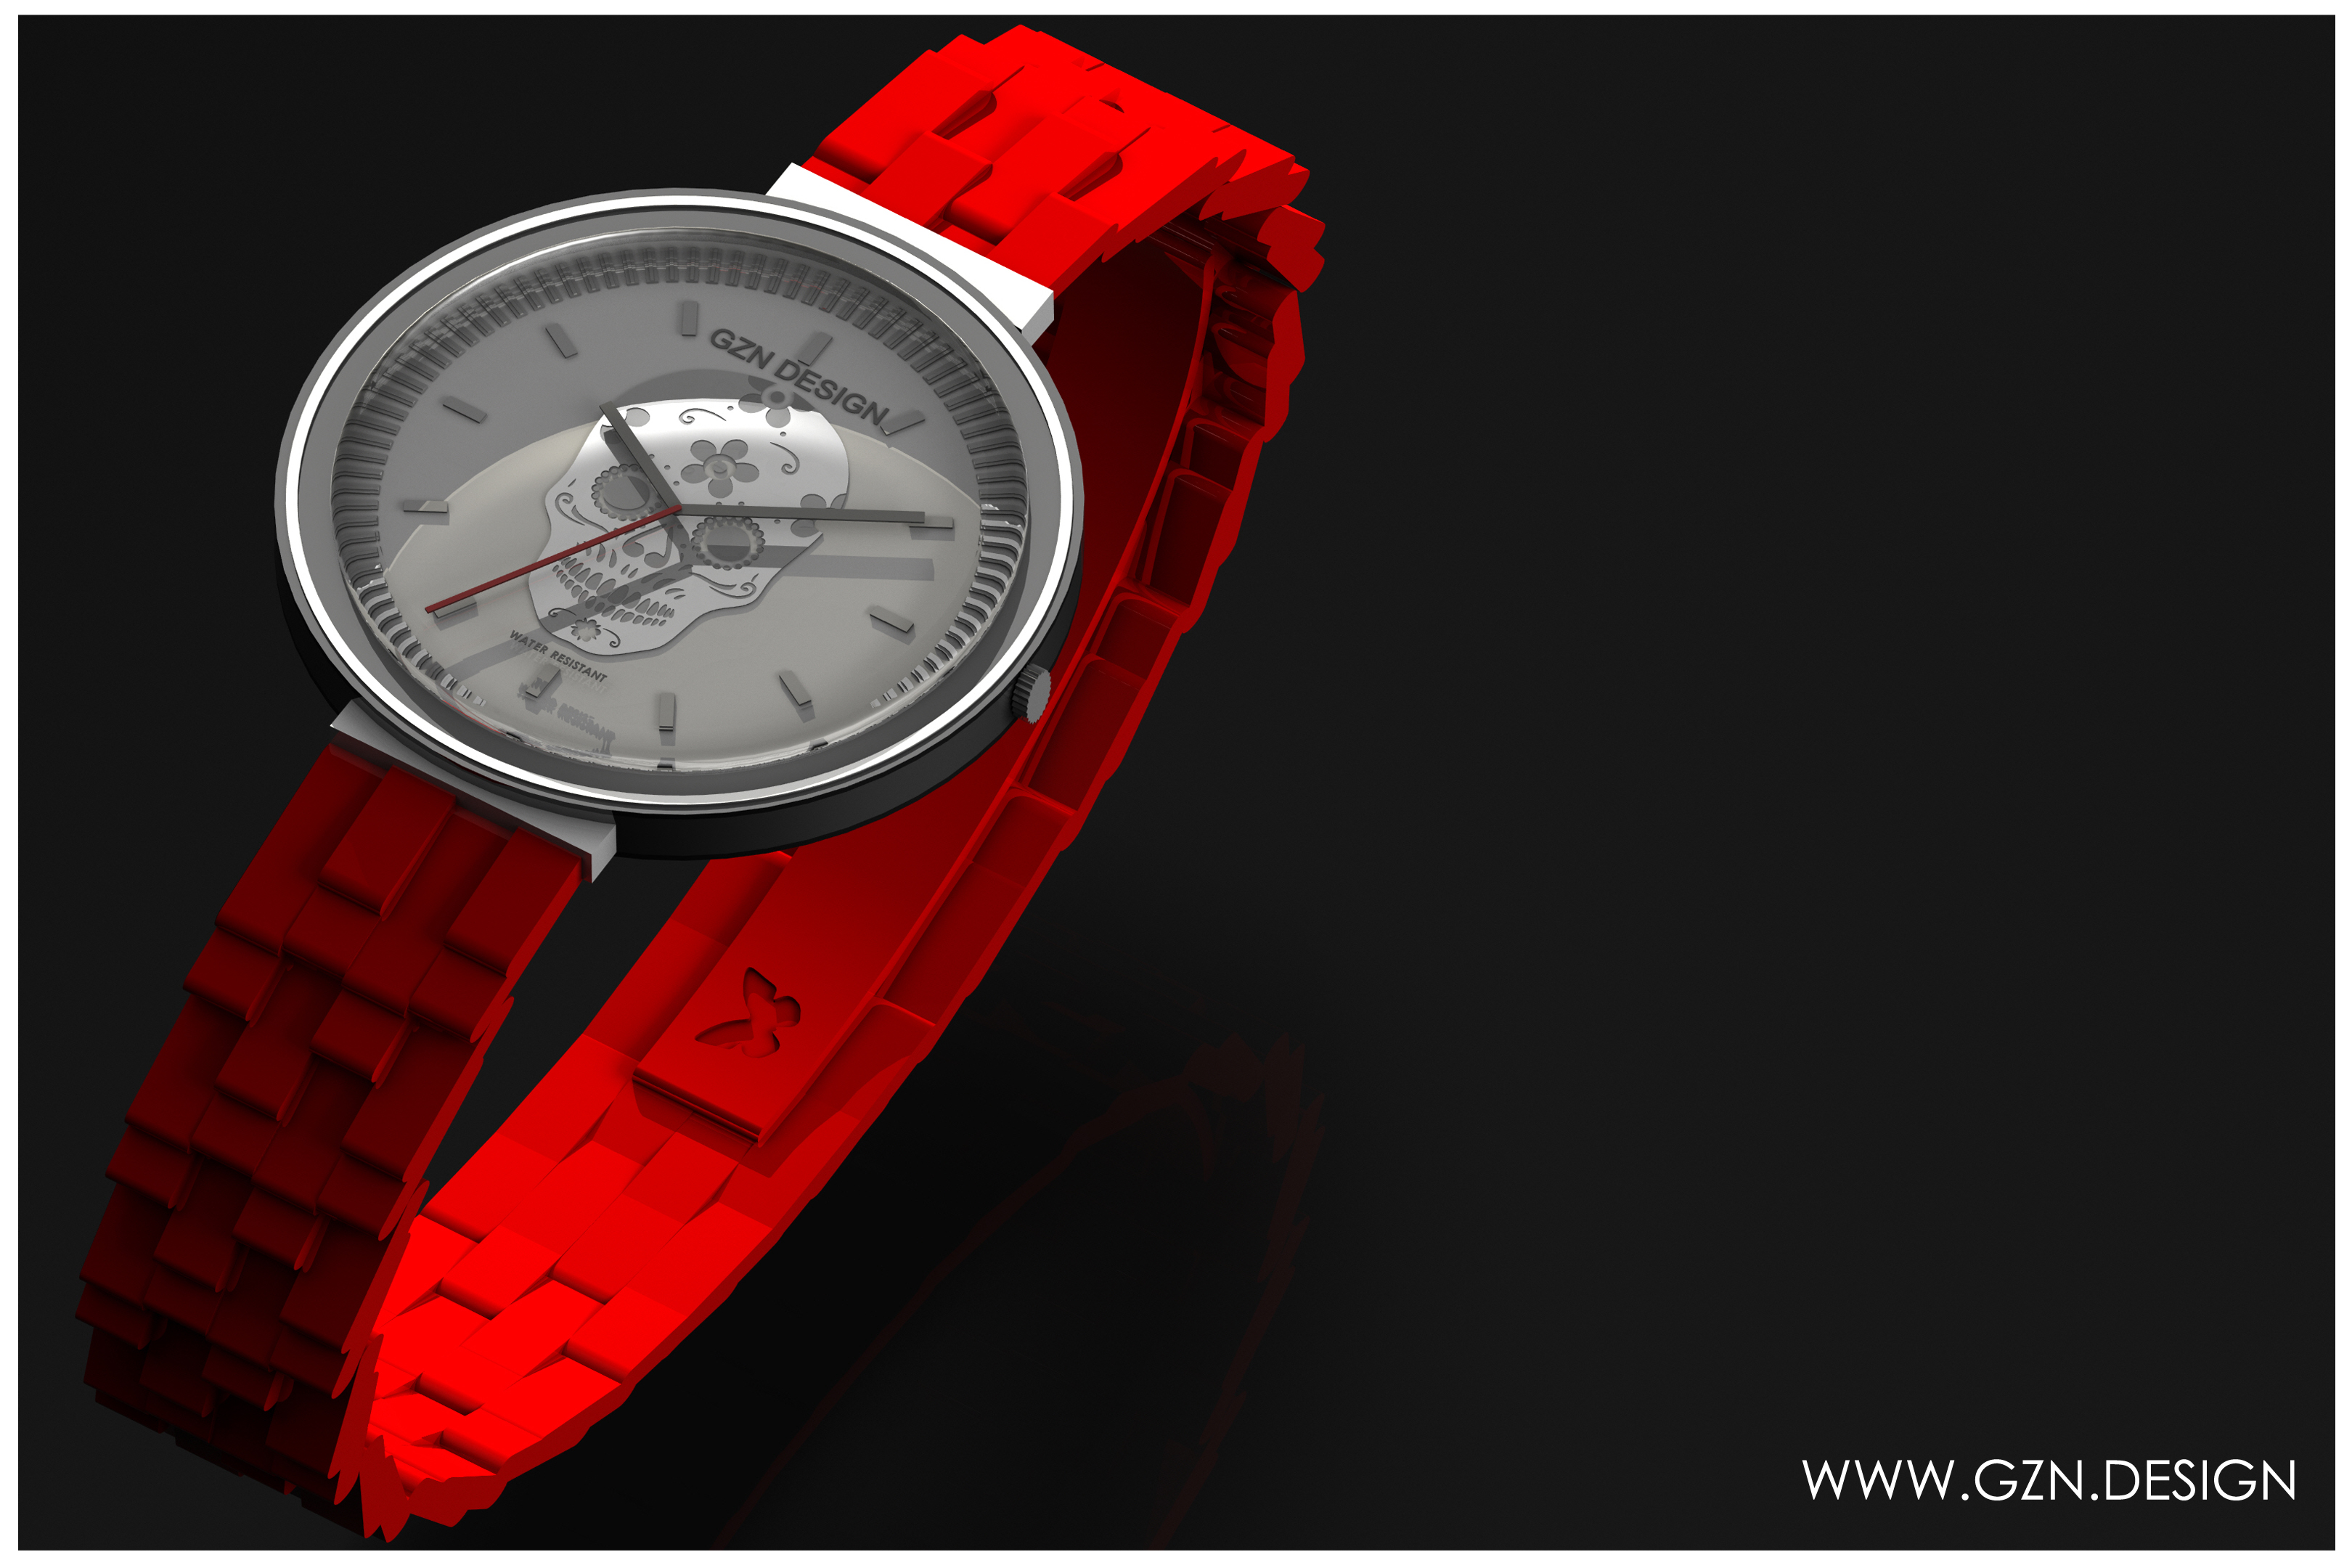 Montre GZN DESIGN ROUGE LOGO